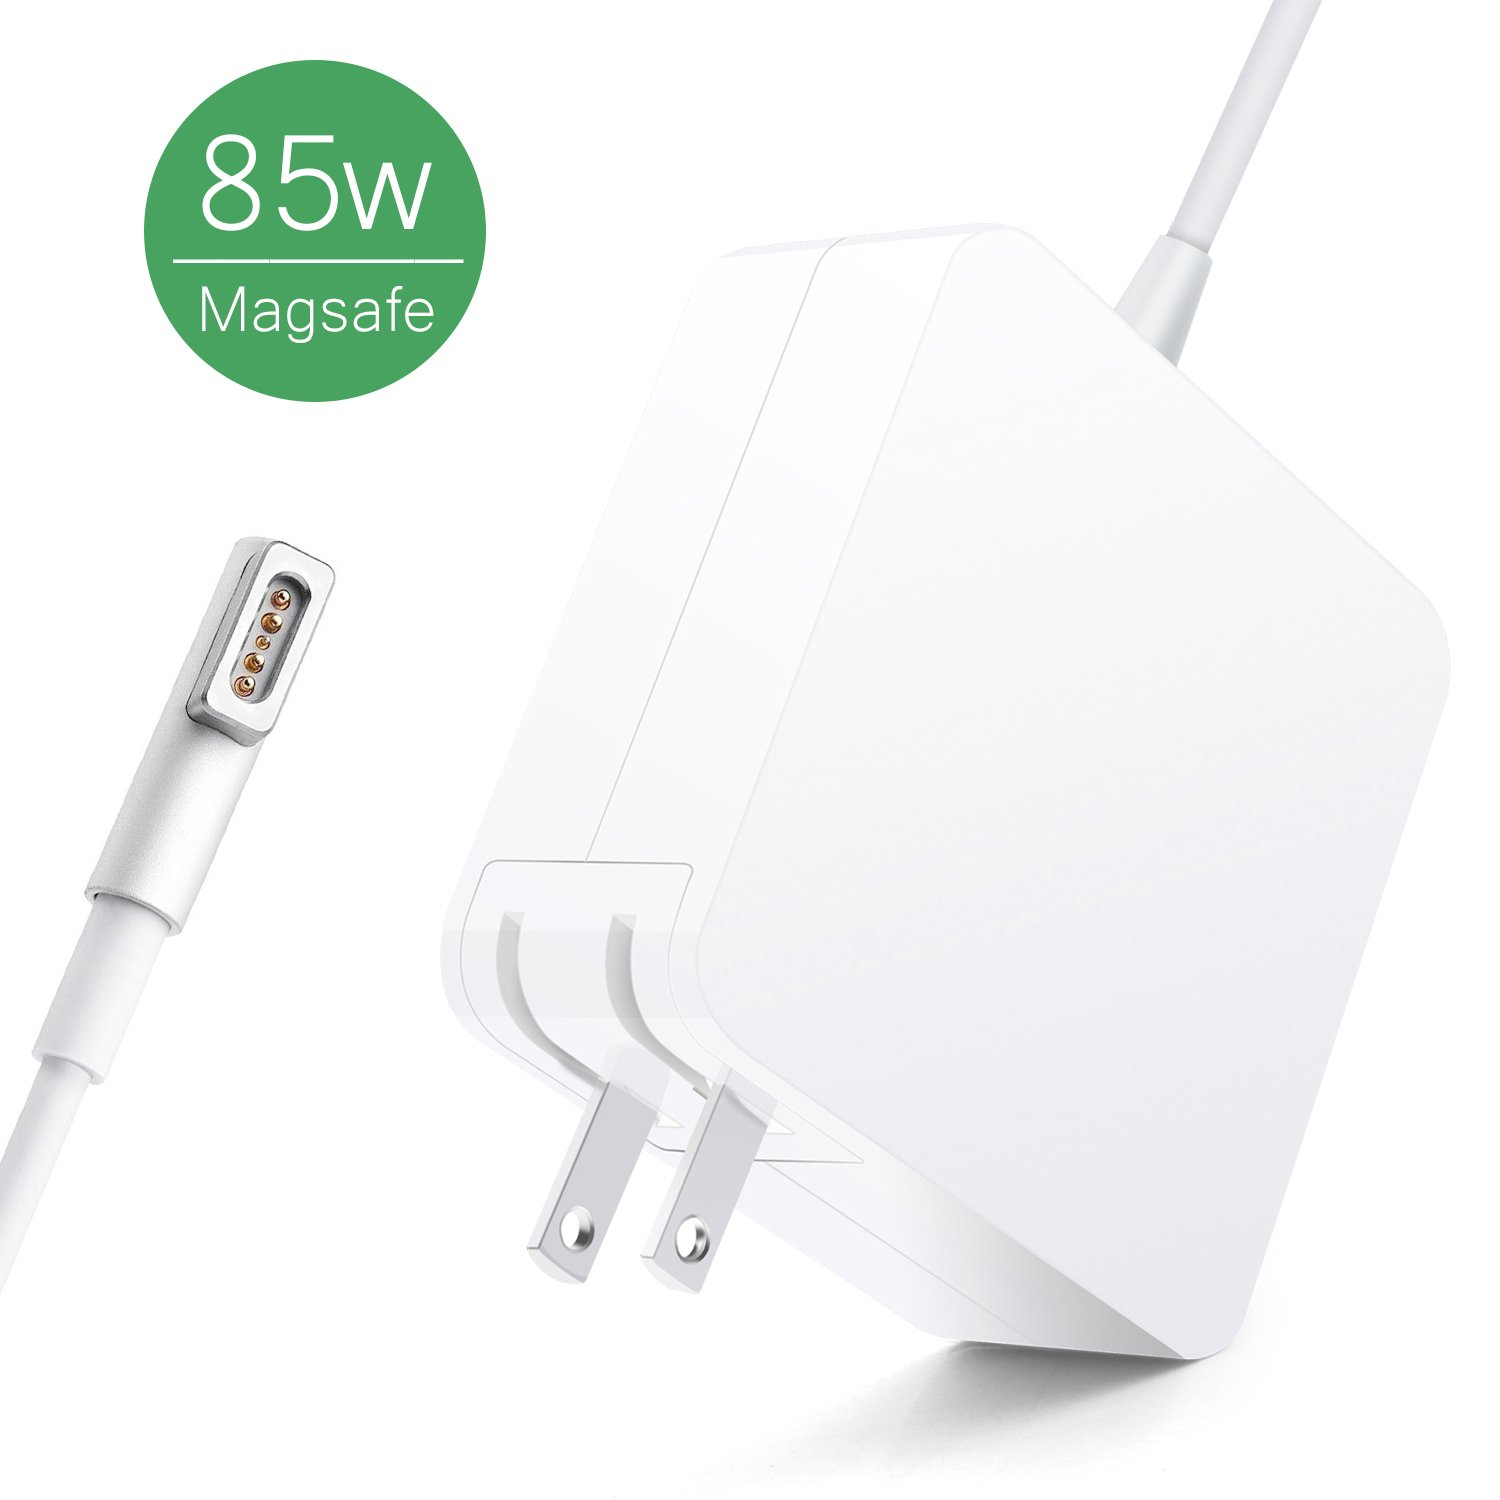 MacBook Pro Charger, Kakivan Mac Charger 85w Magsafe Power Adapter Cord with L-Tip, MacBook Charger 85w Replacement for MacBook Pro 15/17 Inch (Mid2012 Before)